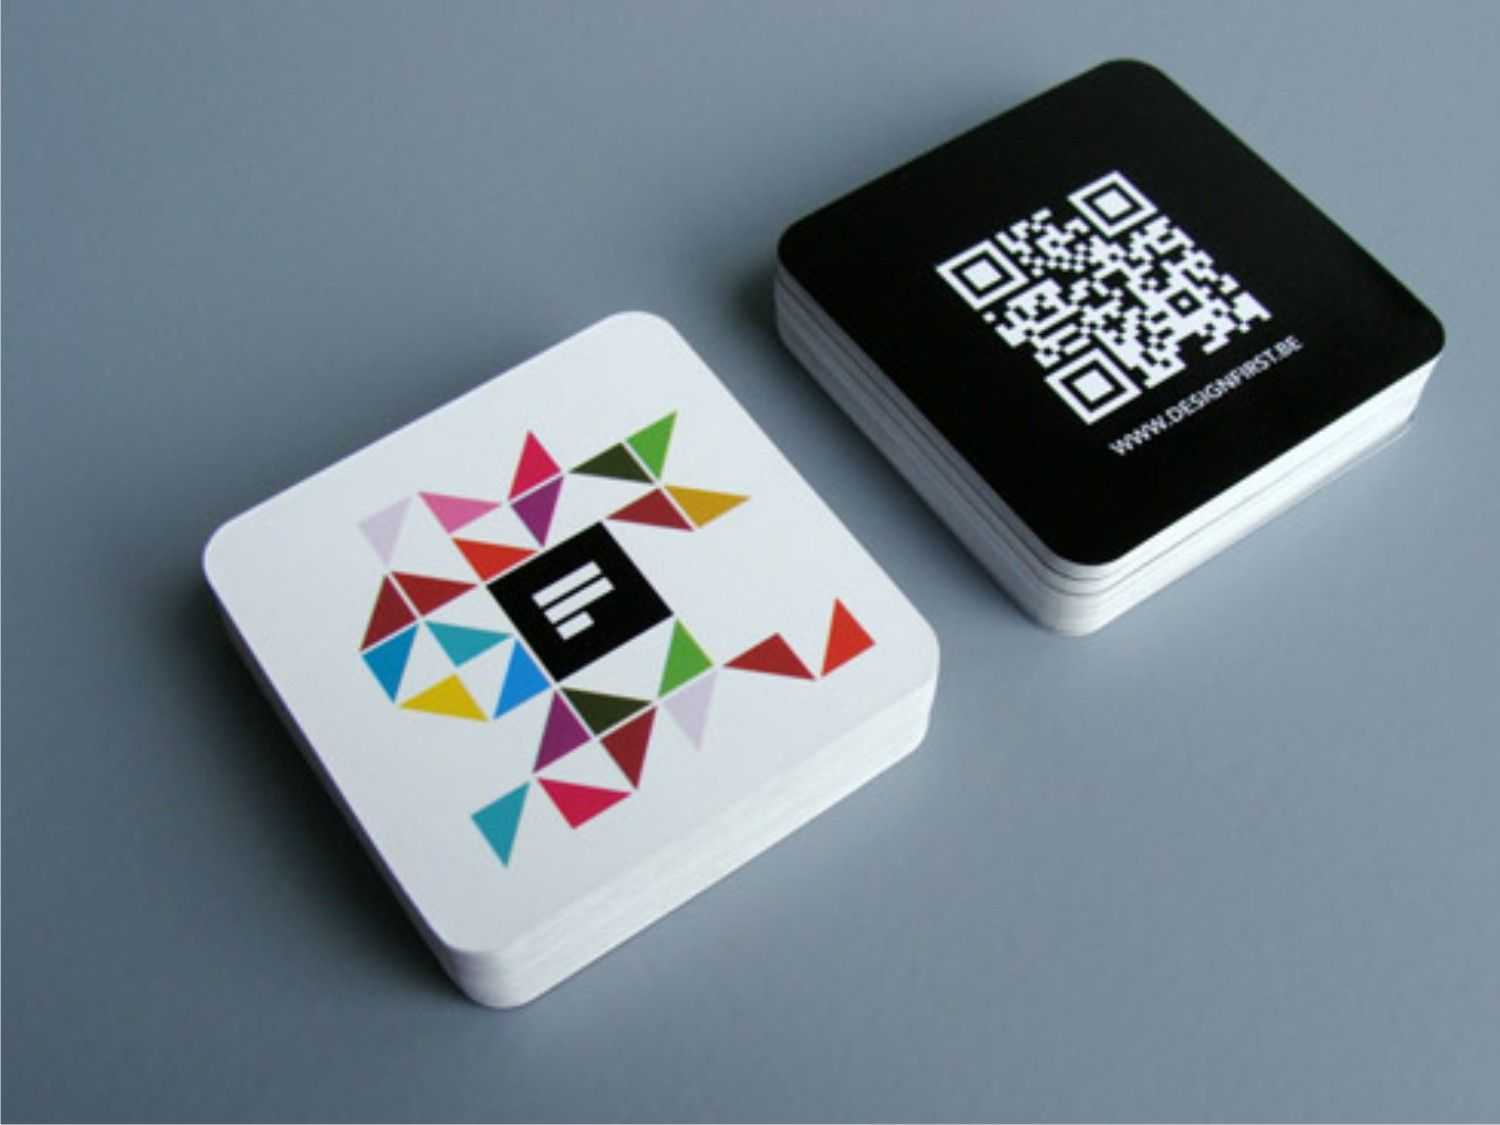 Mini carto c corte especial cartes de visita pinterest mini square business cards are creative and cost effective innovation mini business cards are different from that same old style business cards design magicingreecefo Gallery